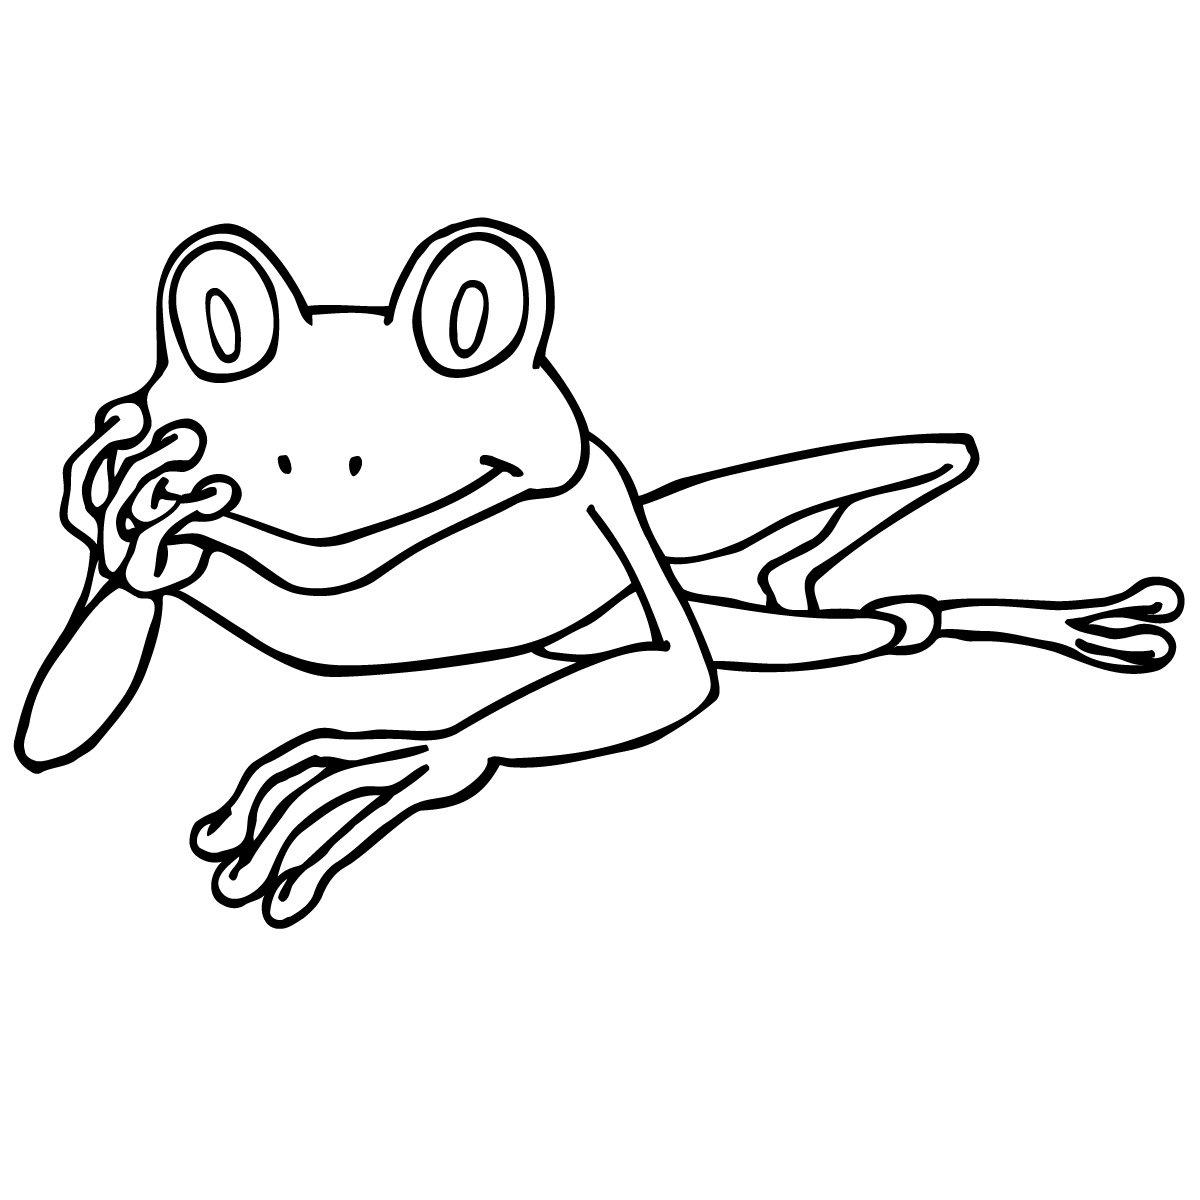 1200x1200 Frog Black And White Tree Frog Clip Art Black And White Free